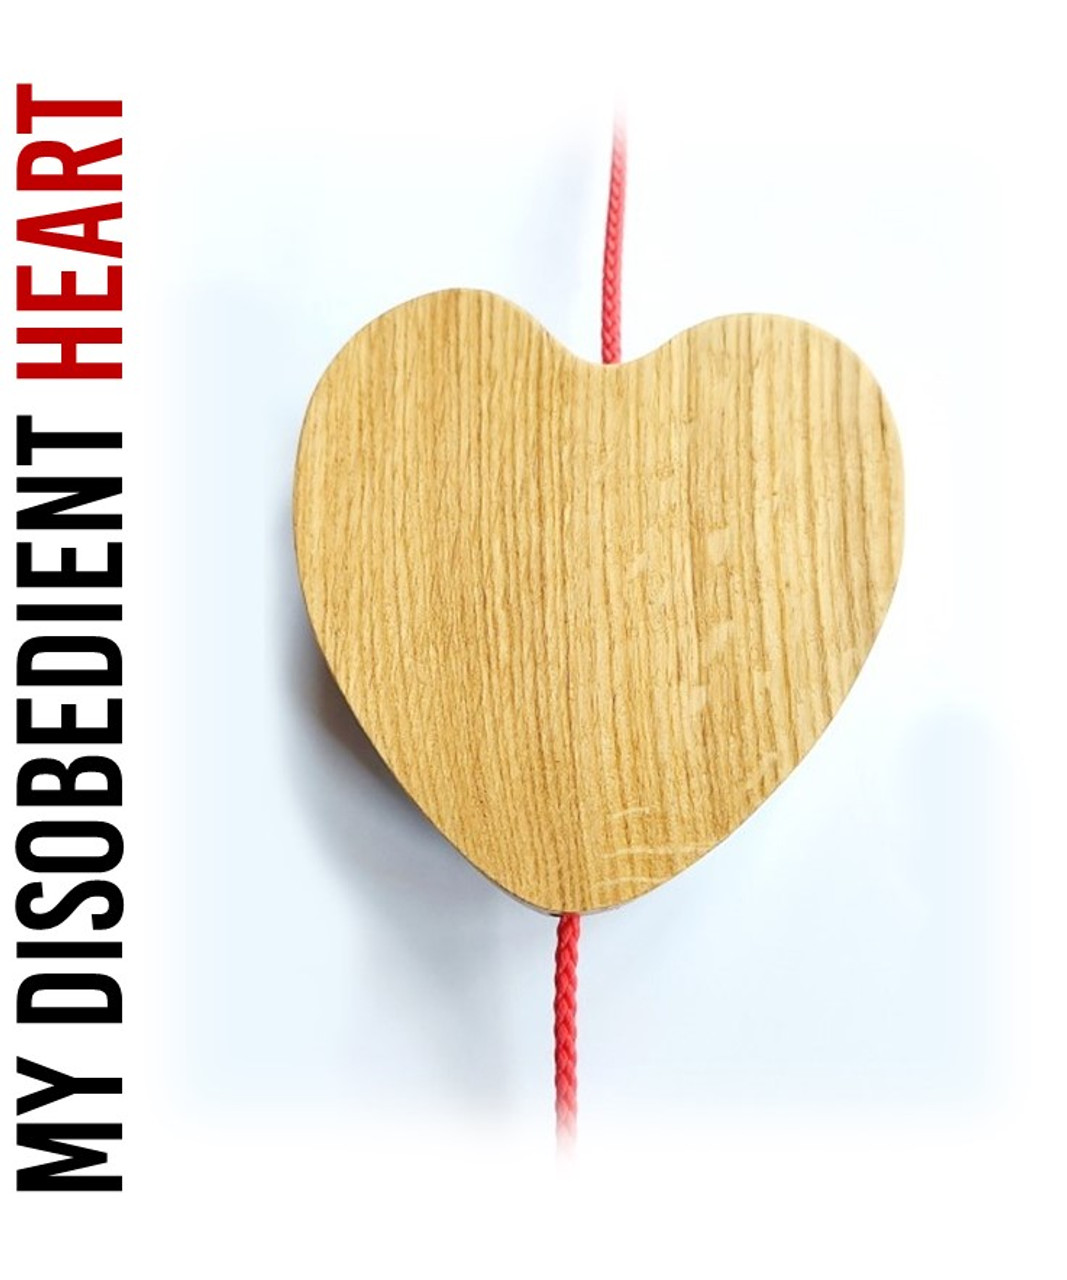 My Disobedient Heart on Rope Magic Trick Illusion Gospel